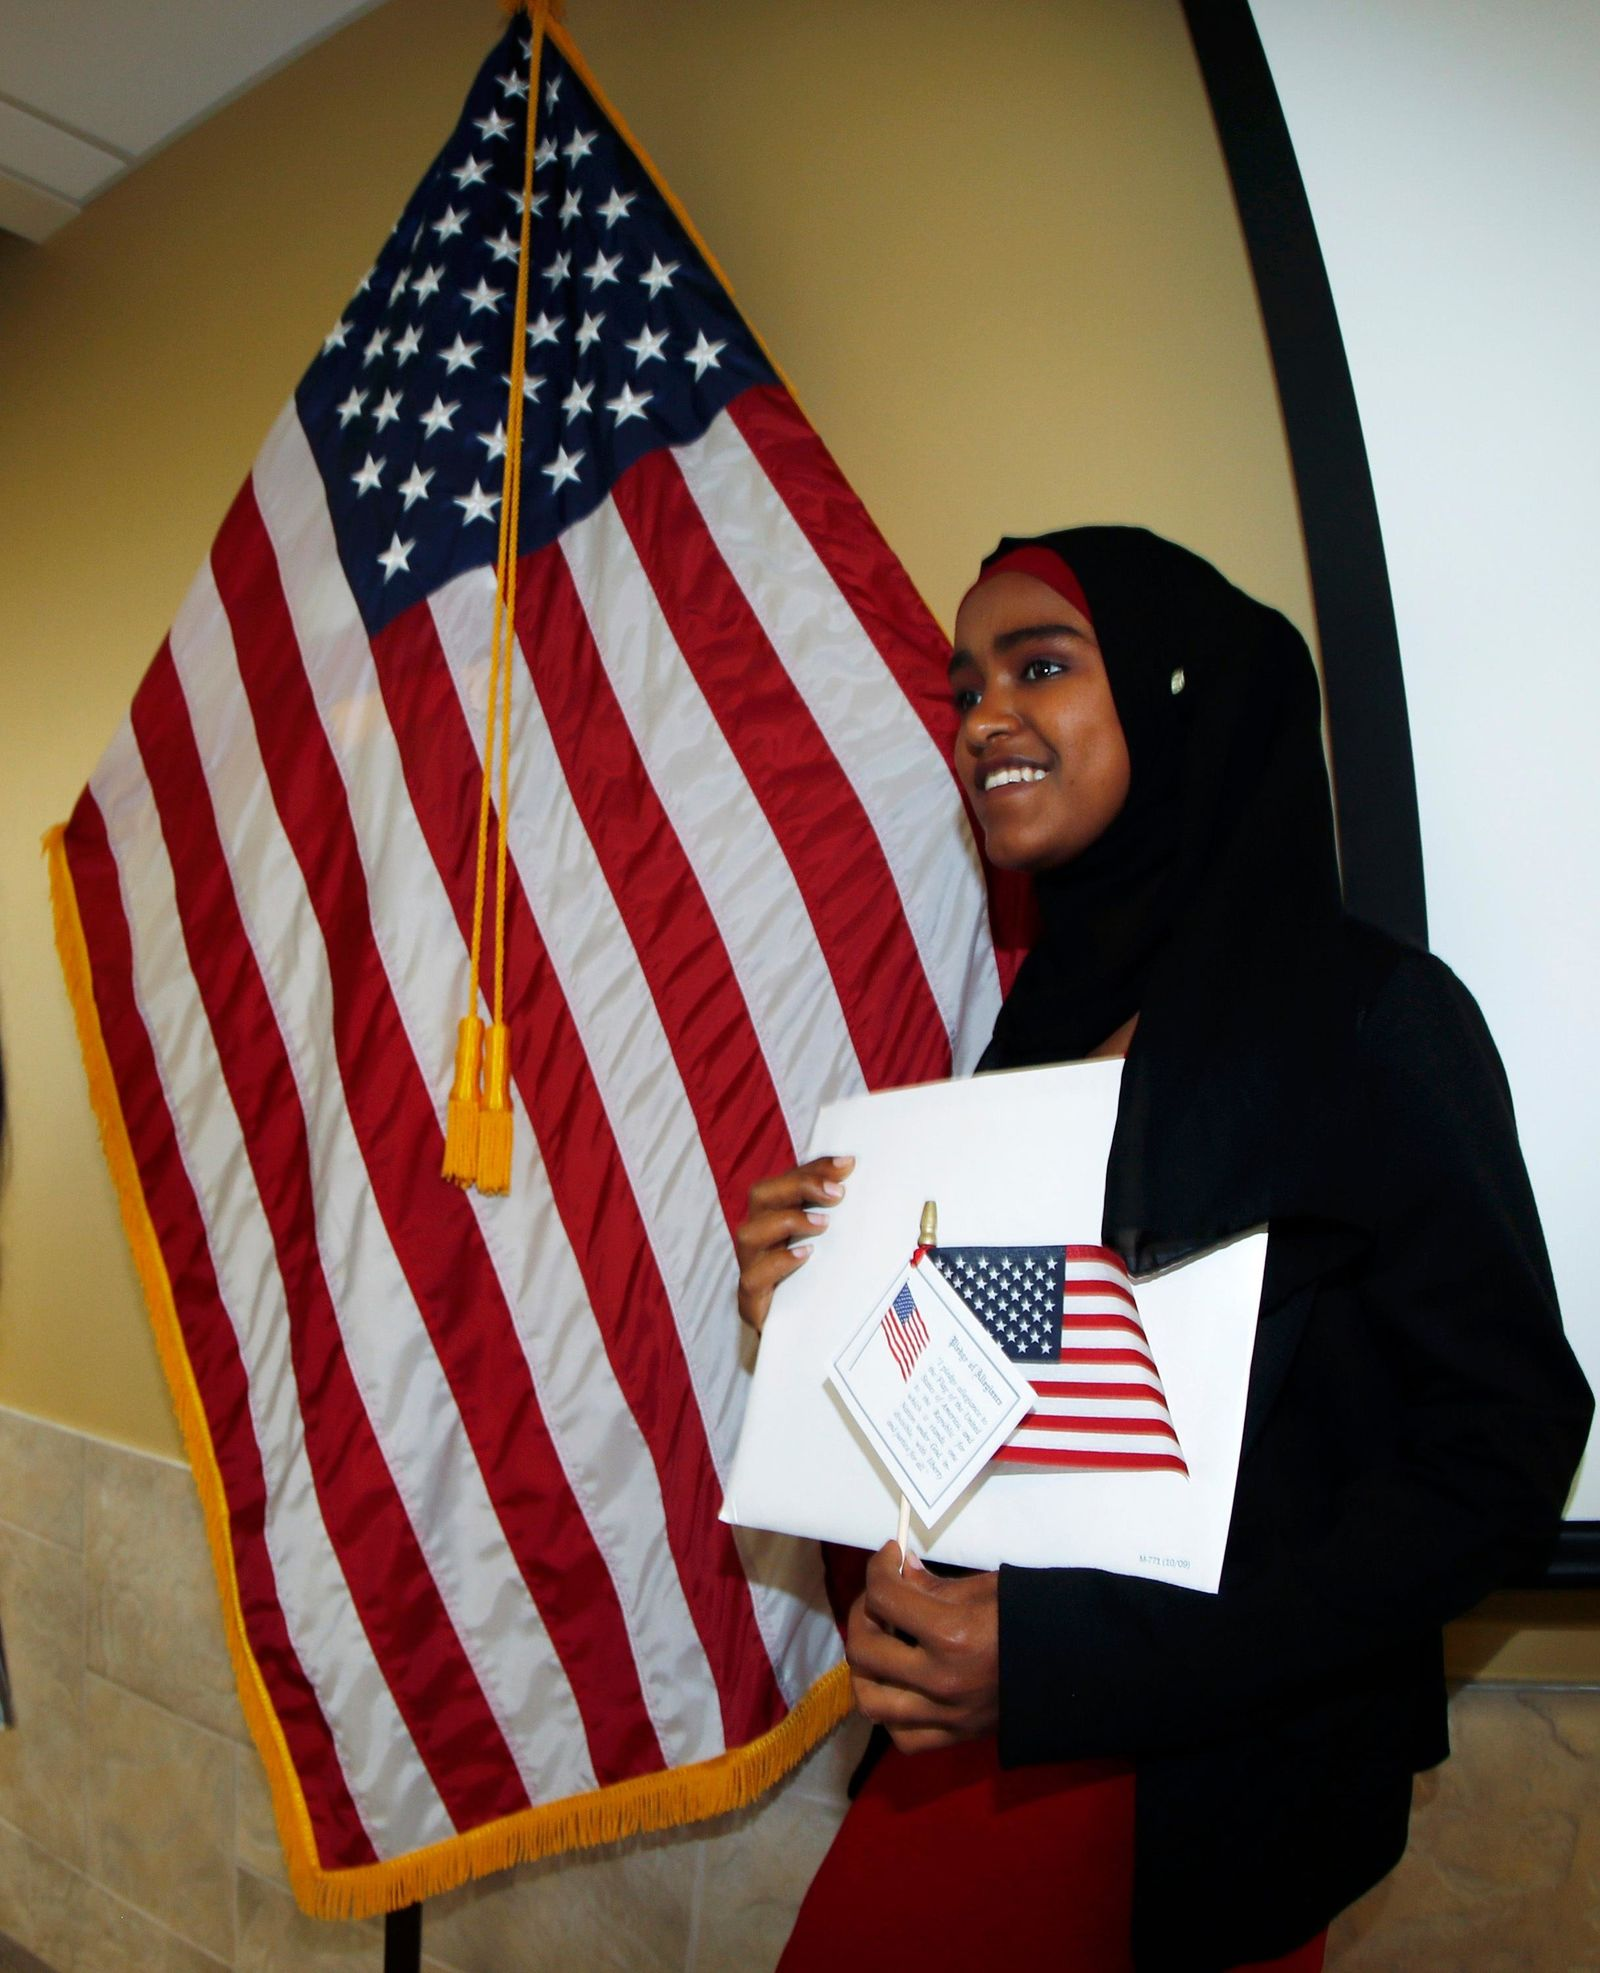 Safu Abdulhakim, who was born in Ethiopia, stands next to an American flag after she was granted her citizenship in the United States at a naturalization ceremony, Thursday, May 16, 2019, in Centennial, Colo. (AP Photo/David Zalubowski)